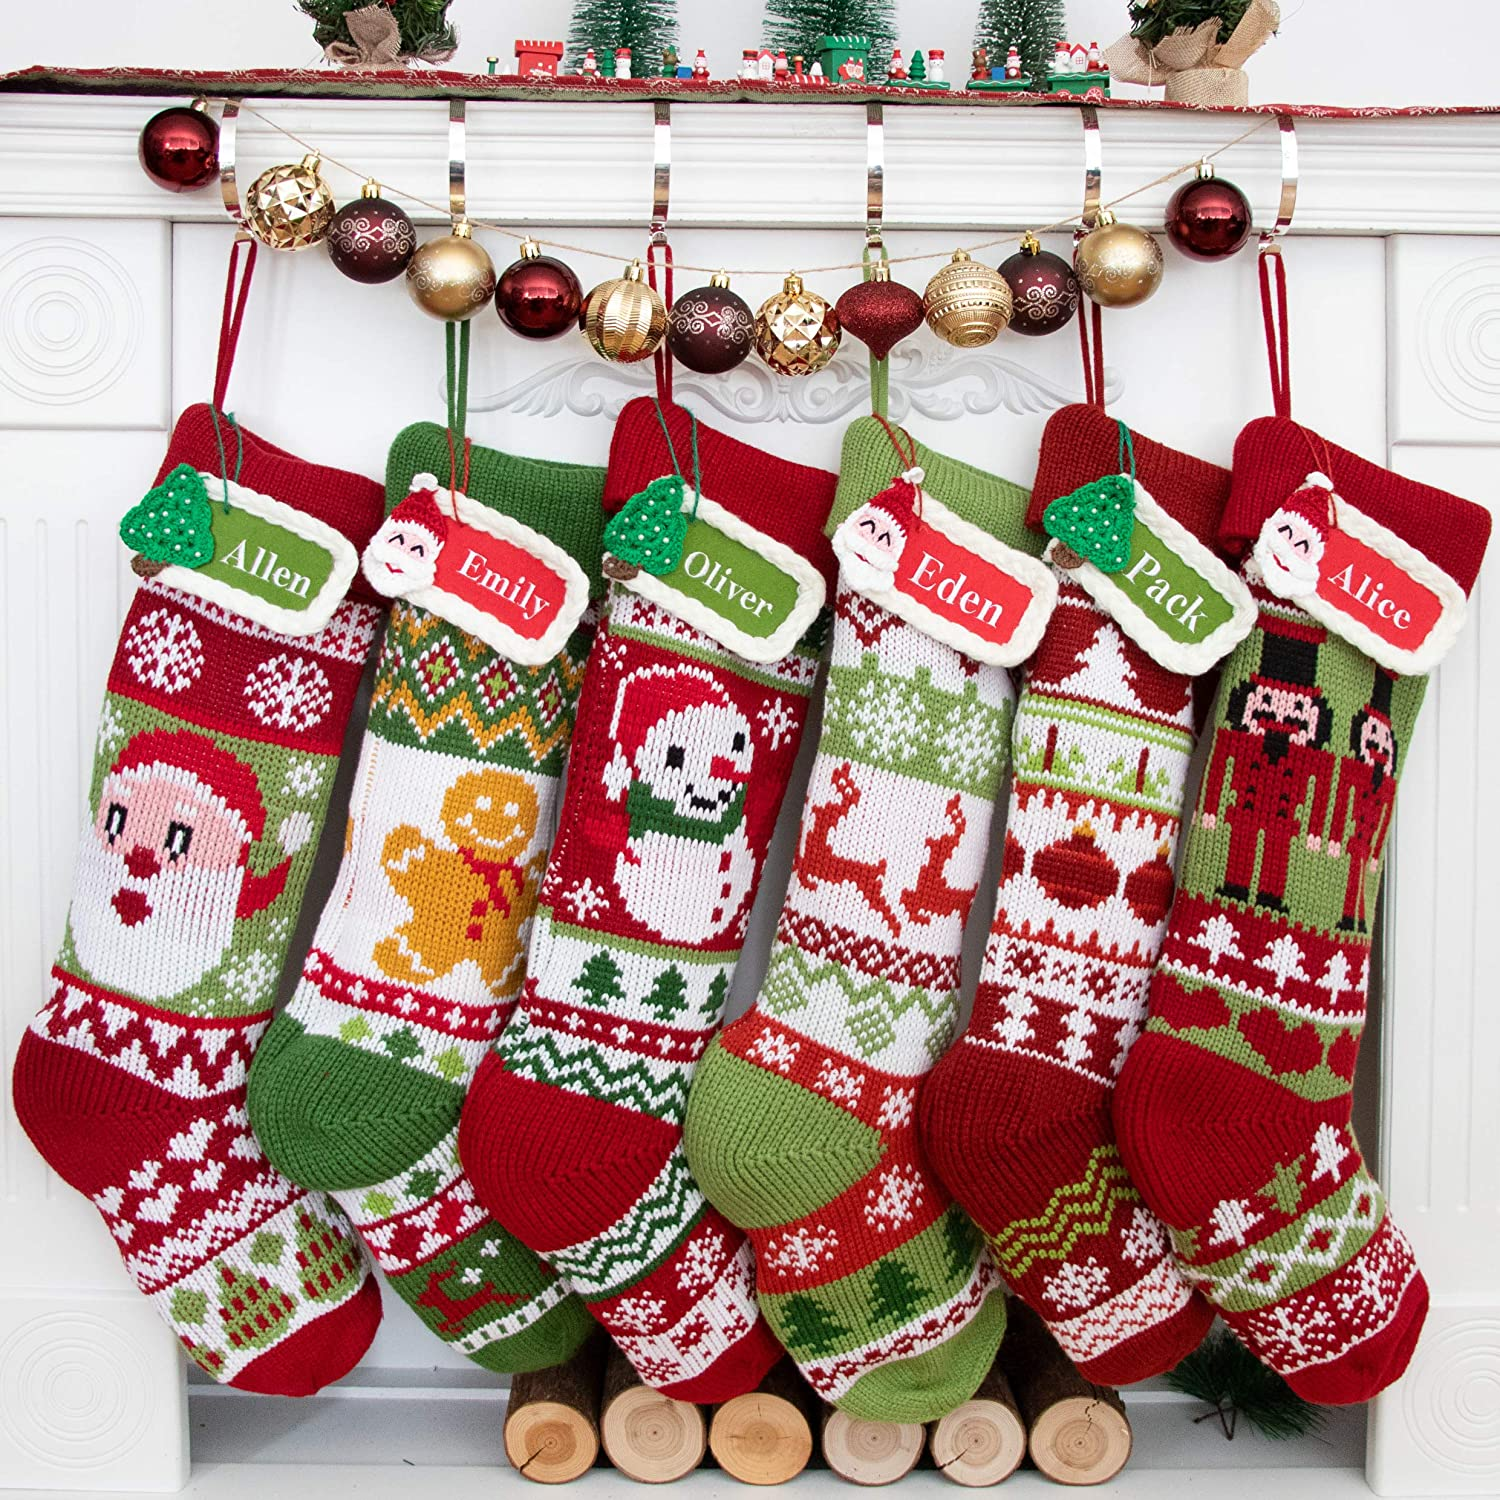 BHD BEAUTY Personalized 2019 Large Knitting Christmas Stocking for Family - DealXeed